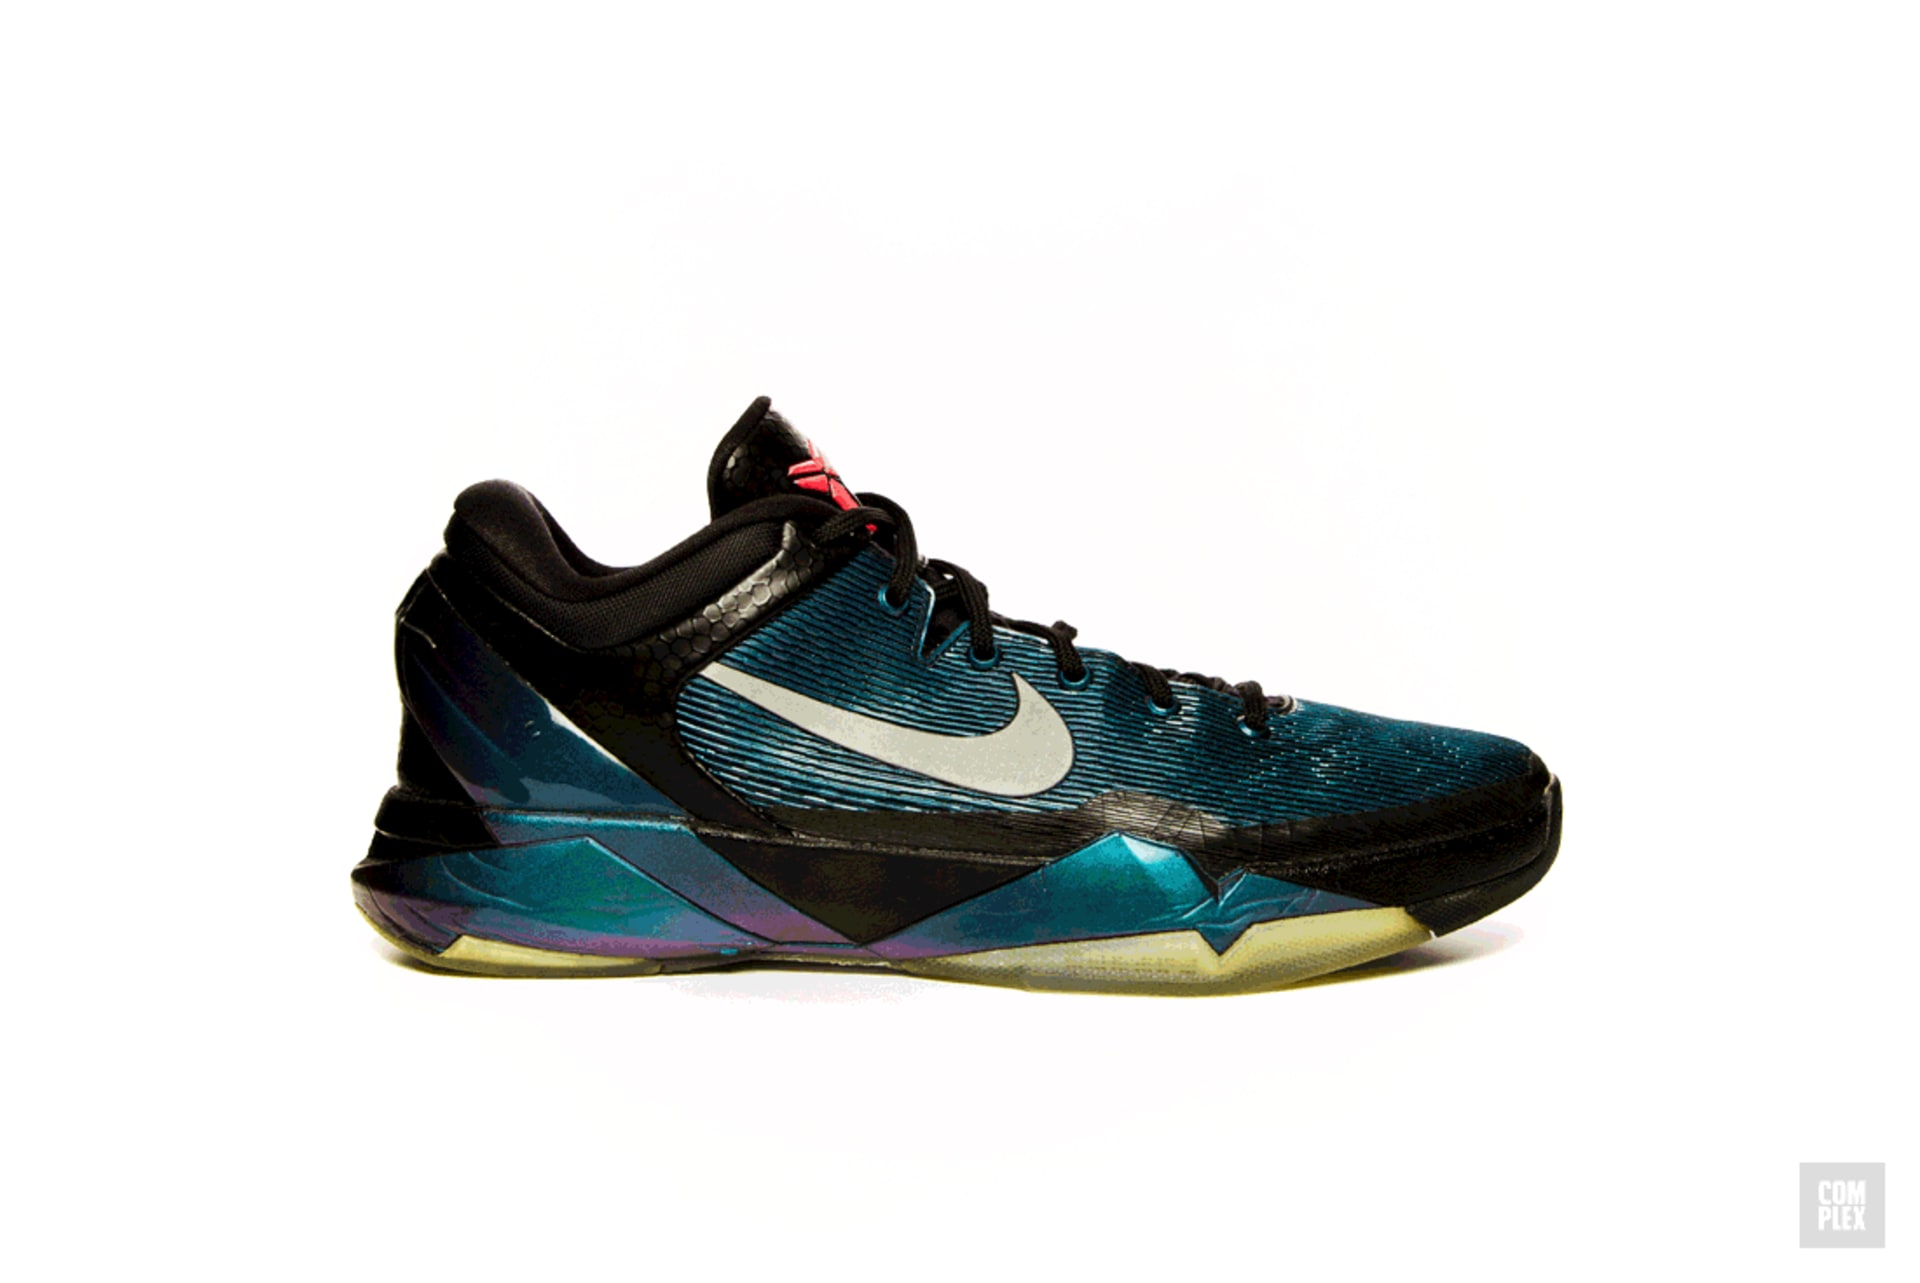 on sale a5545 667e8 Kobe Bryant Signature Sneaker Design Evolution   Complex